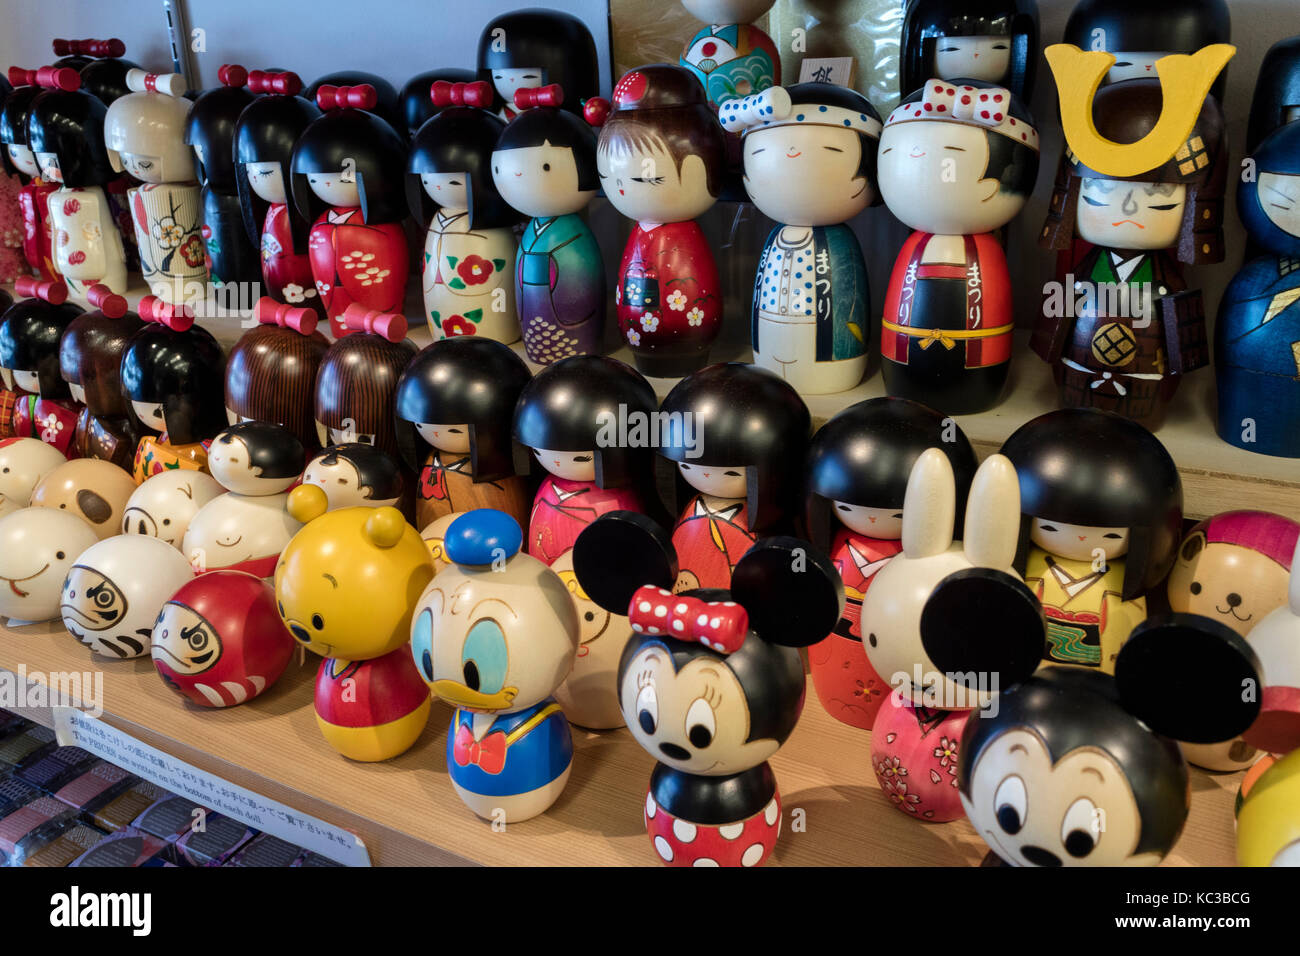 Kyoto - Japan, May18, 2017: Traditional wooden kokeshi dolls for sale as gifts or souvenirs - Stock Image